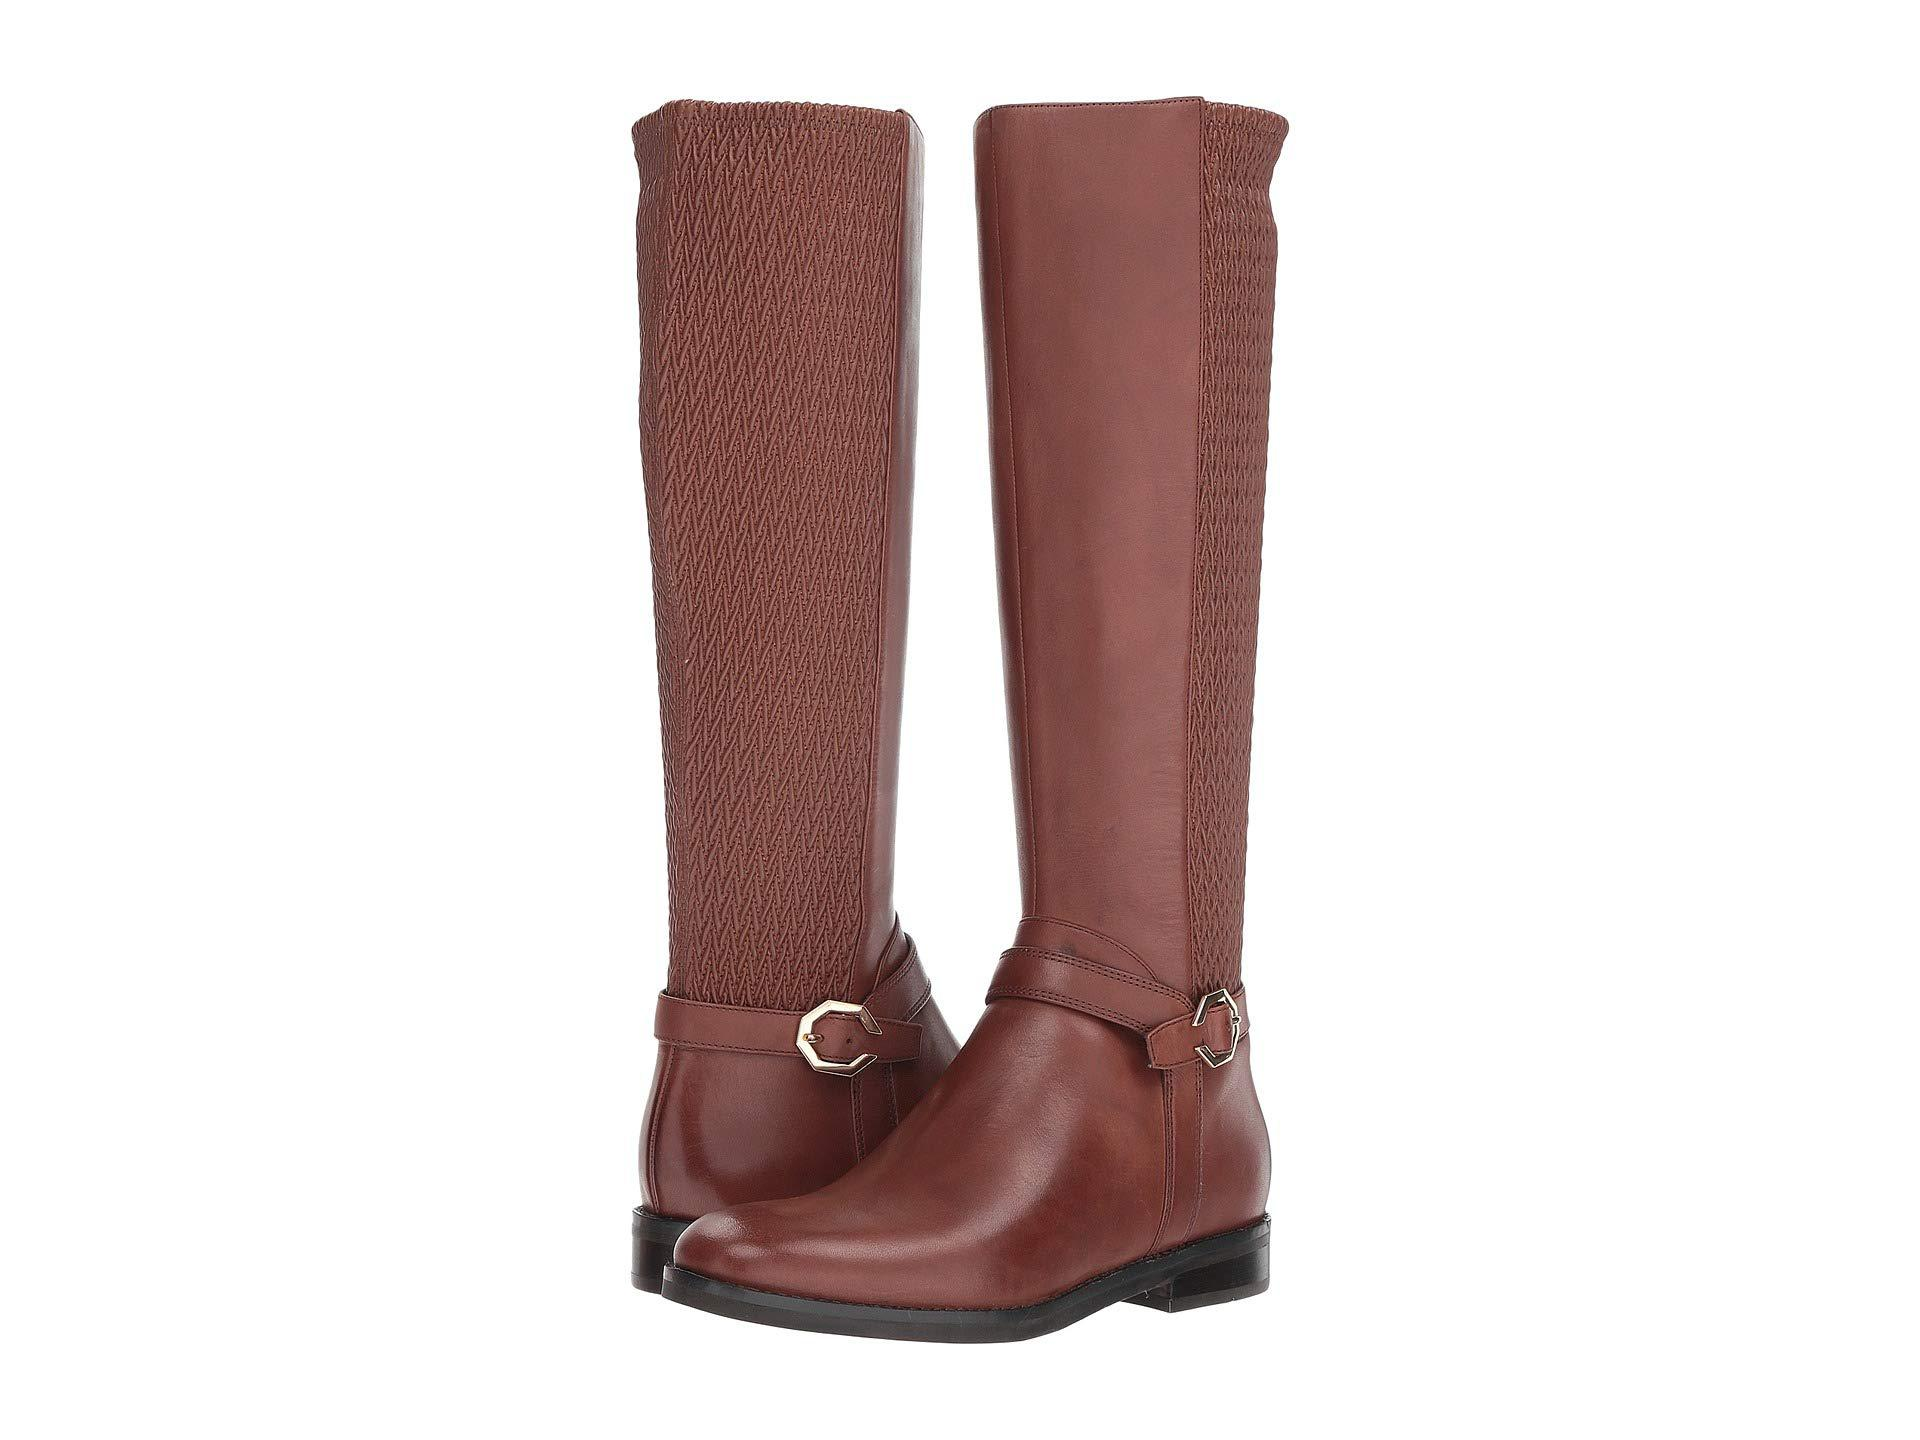 a94c1ad7308 Lyst - Cole Haan Leela Grand Os Knee-high Riding Boots in Brown